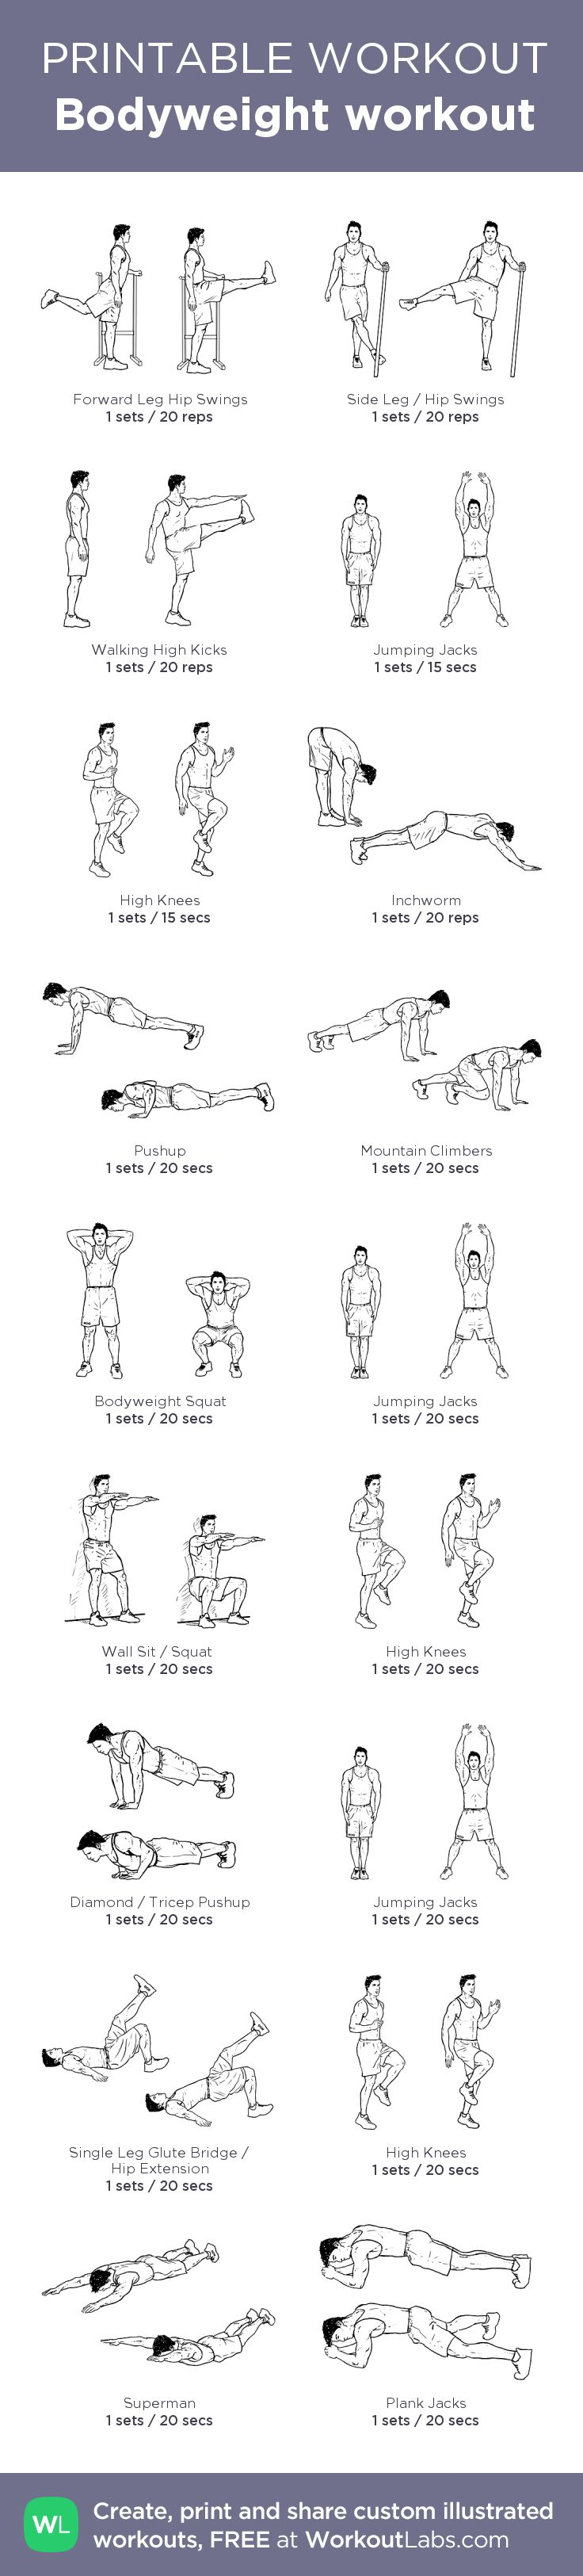 Bodyweight workout: my custom printable workout by @WorkoutLabs #workoutlabs #customworkout